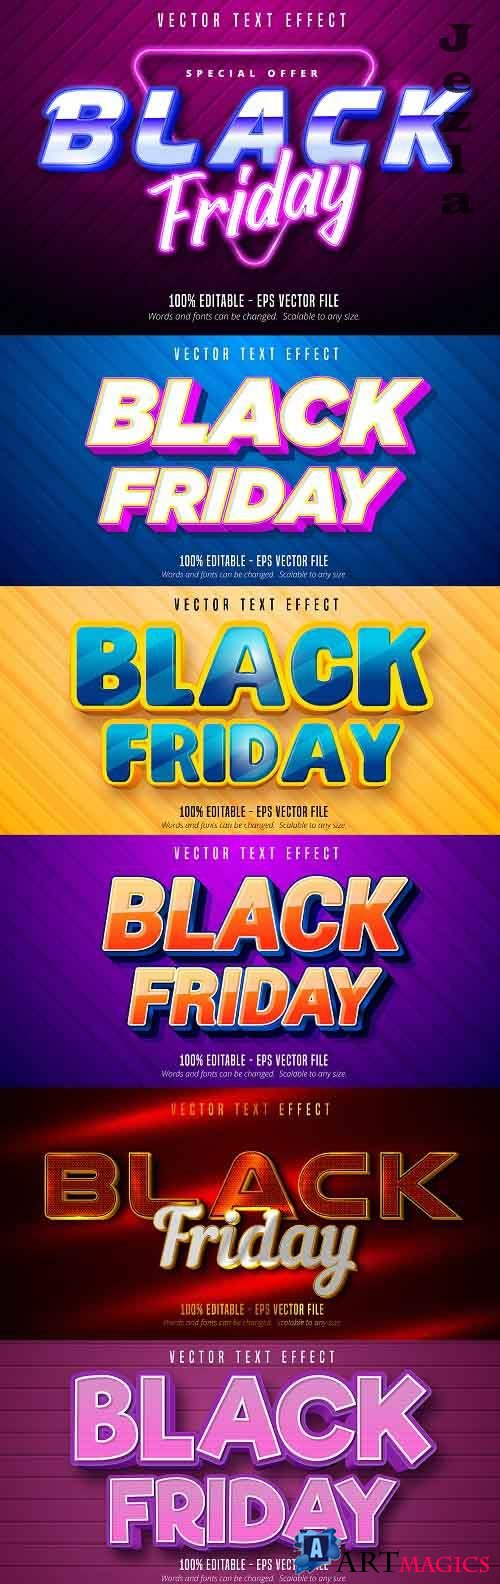 Editable font effect text collection illustration design 224 - Black Friday